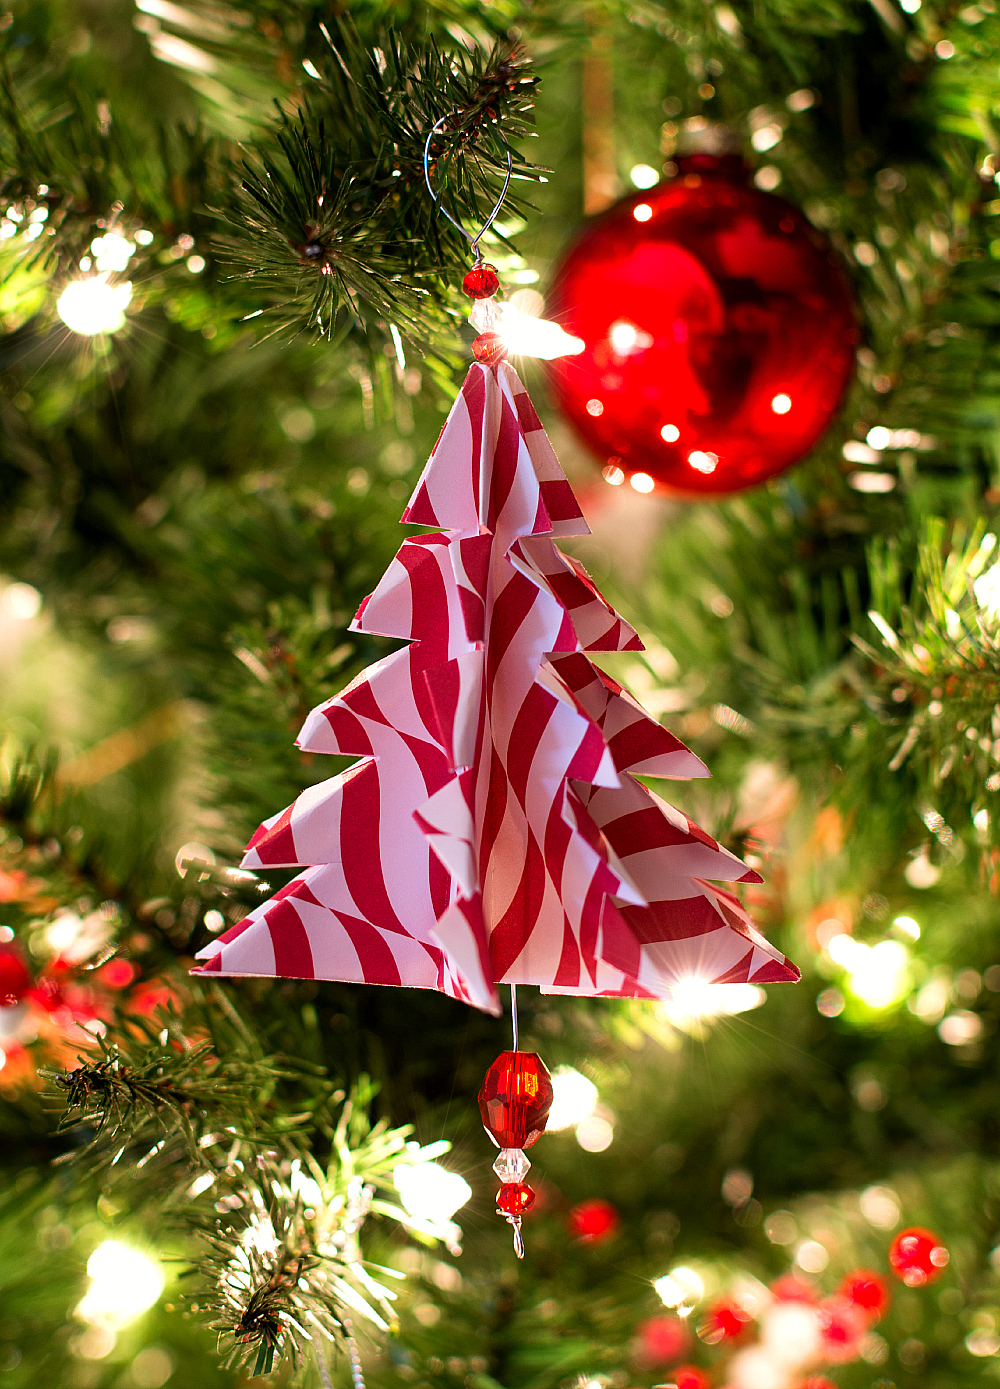 Christmas Craft Ideas: Handmade Ornament from Paper